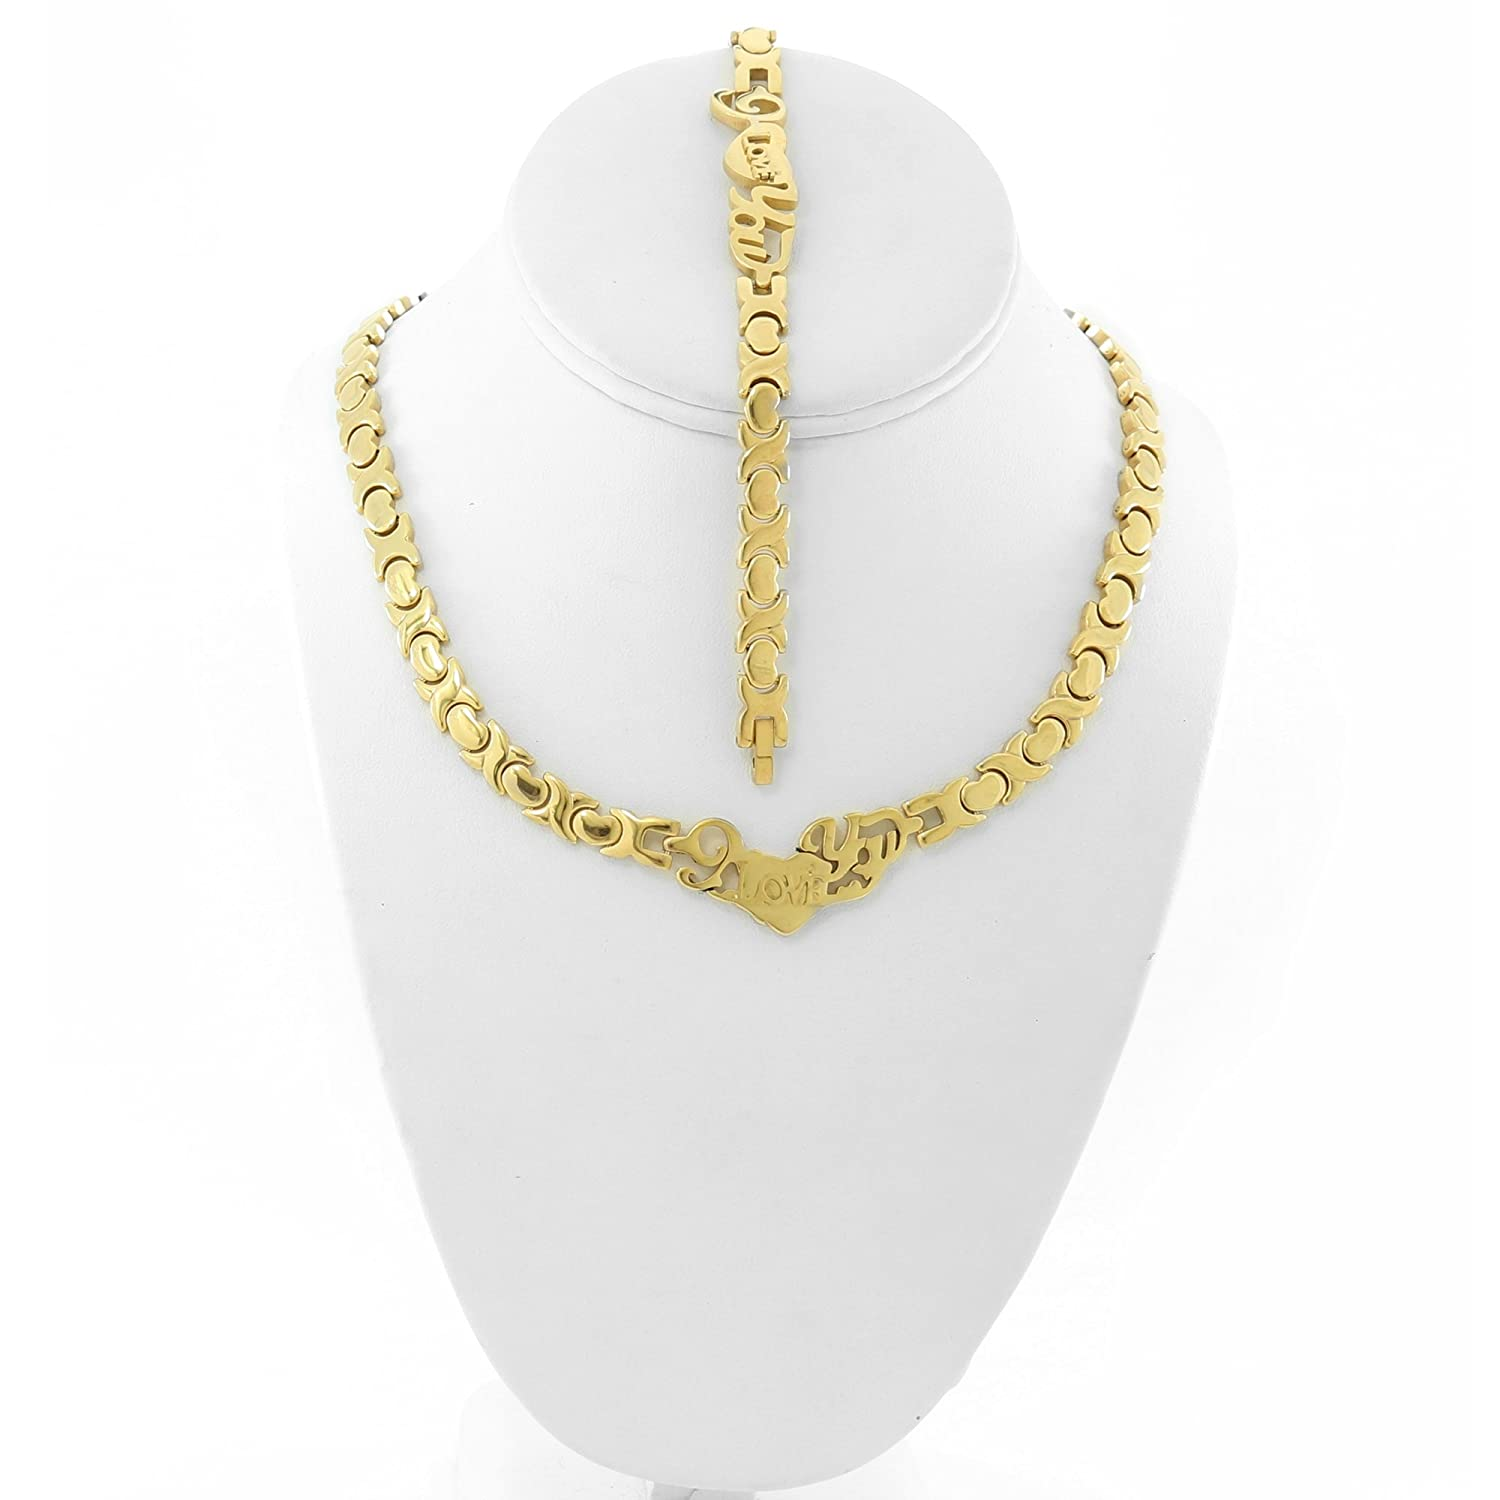 Amazon.com: I LOVE YOU GOLD TONE HUGS AND KISSES NECKLACE AND ...